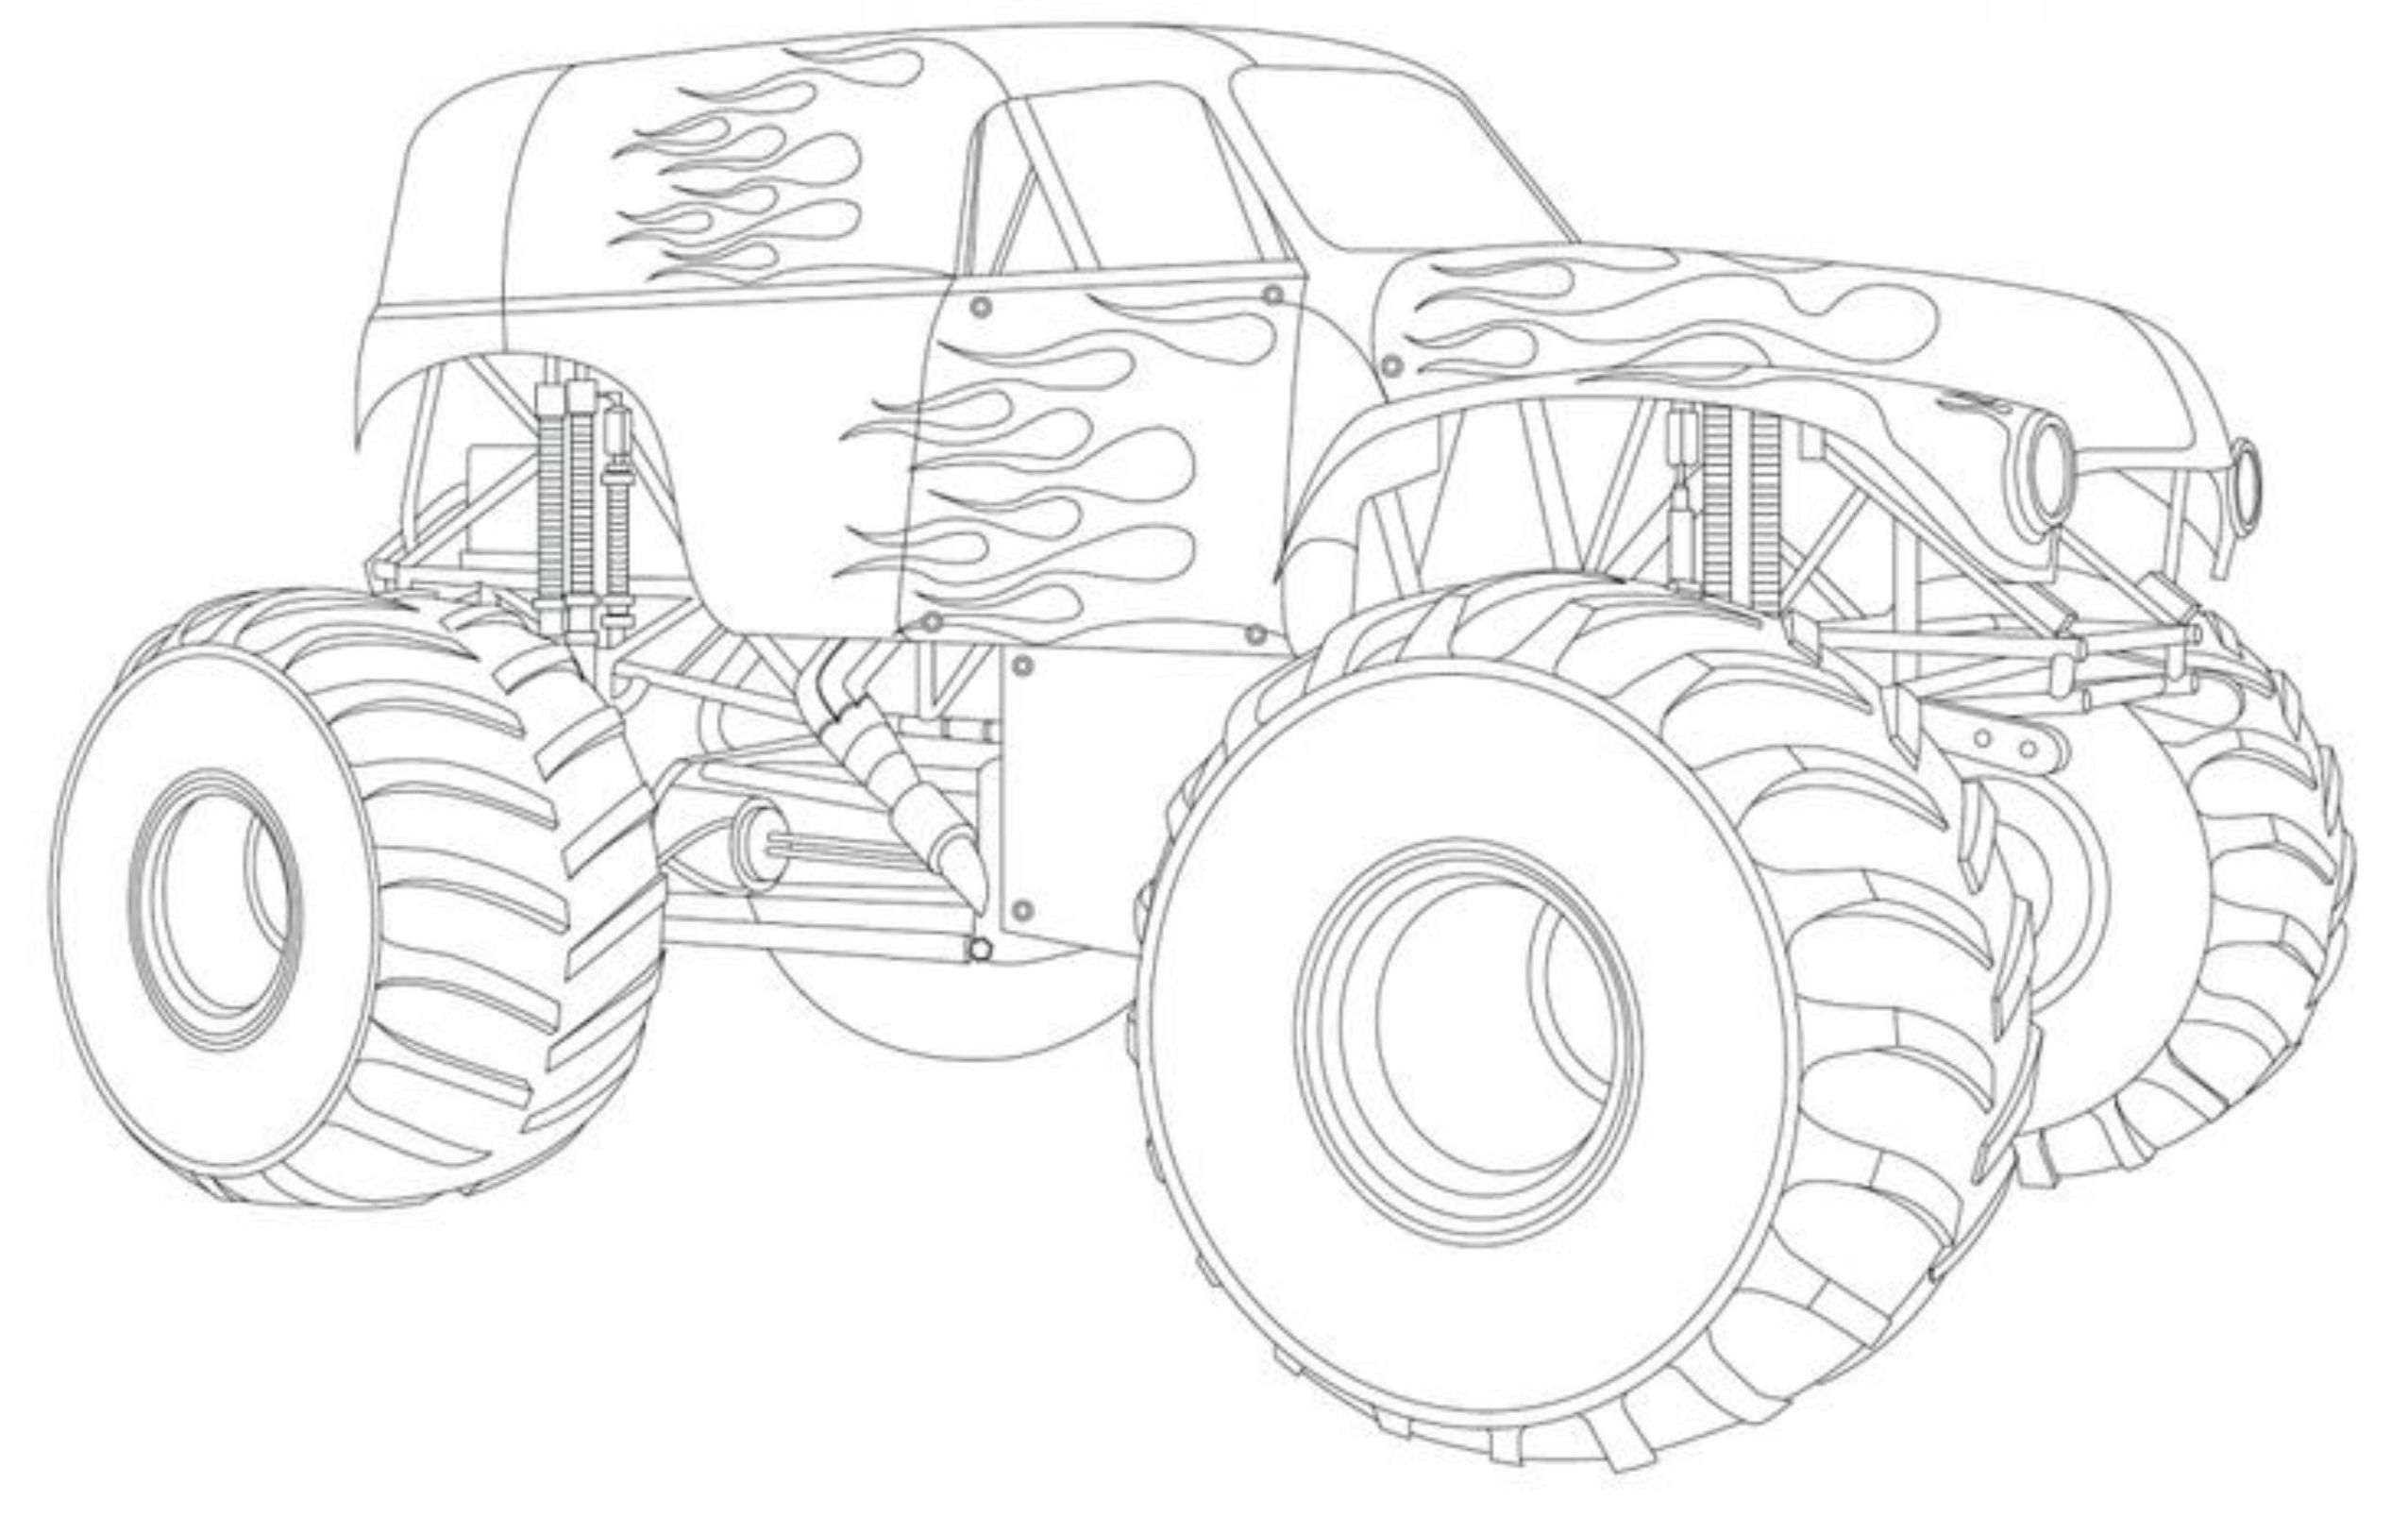 Free coloring pages of monster trucks murderthestout for Free truck coloring pages